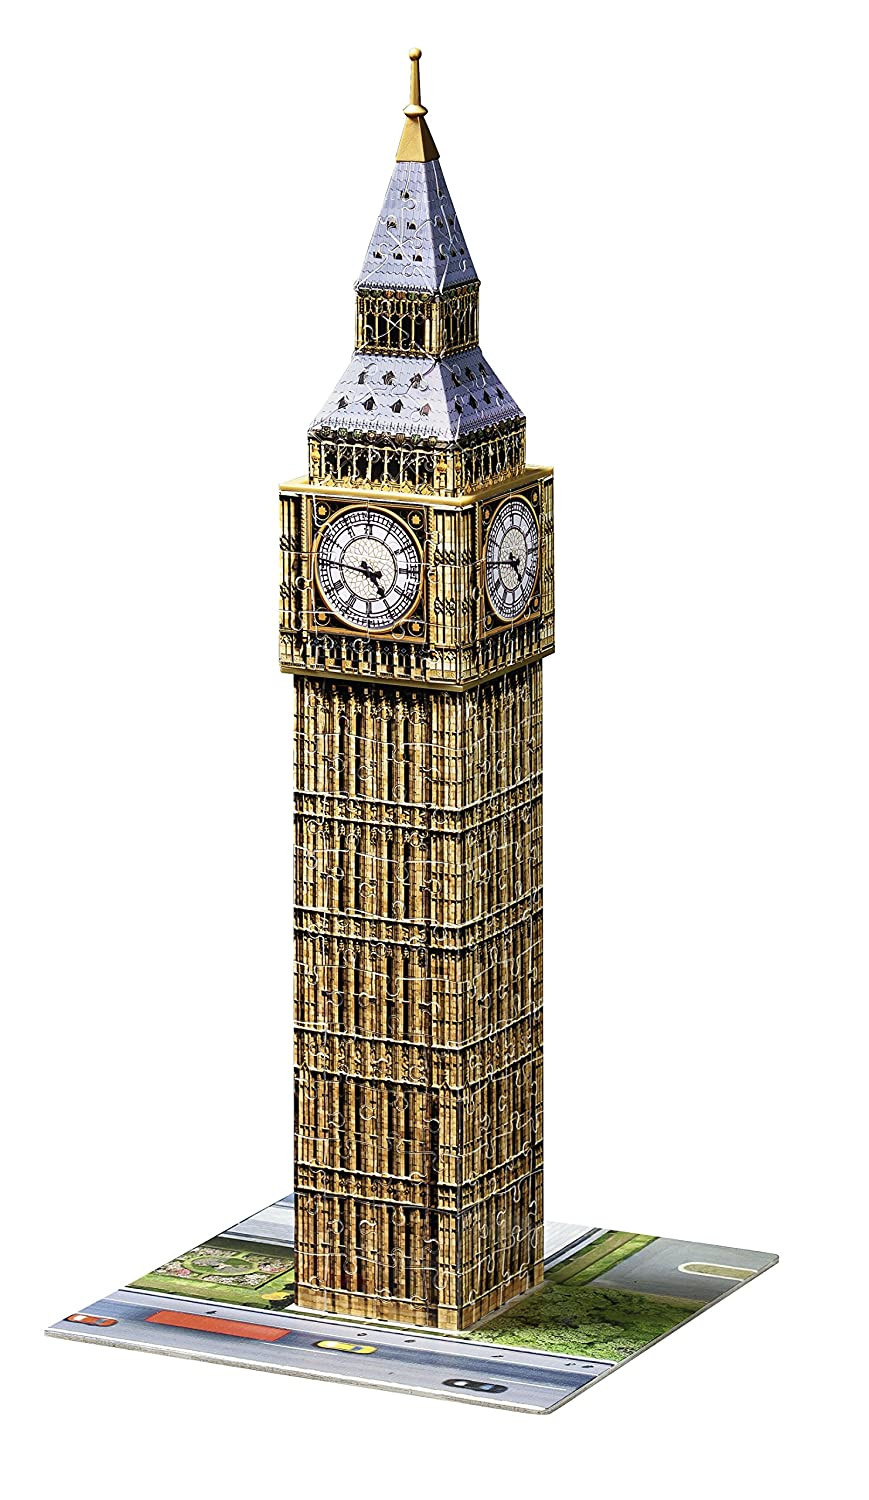 Ravensburger Big Ben 216 Piece 3D Jigsaw Puzzle for Kids and Adults - Easy Click Technology Means Pieces Fit Together Perfectly Varios Ravensburger Spielverlag 12554